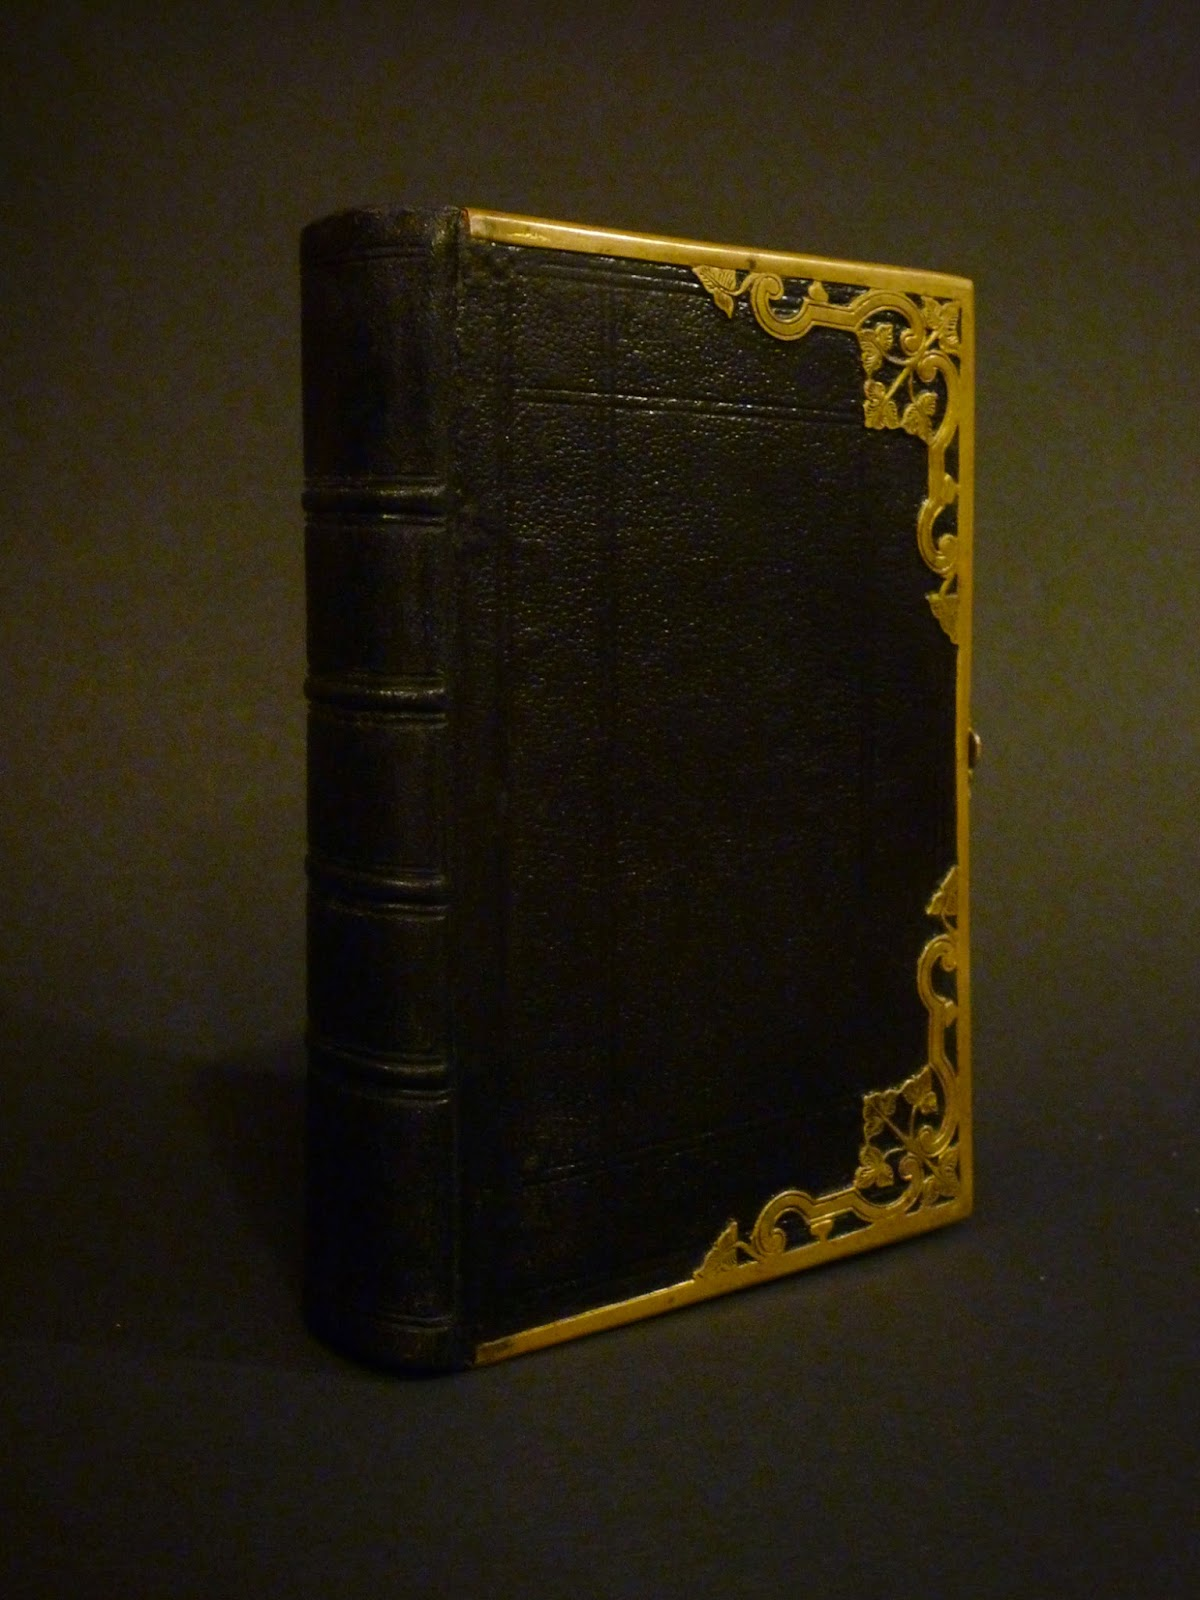 Bookbinder's Chronicle